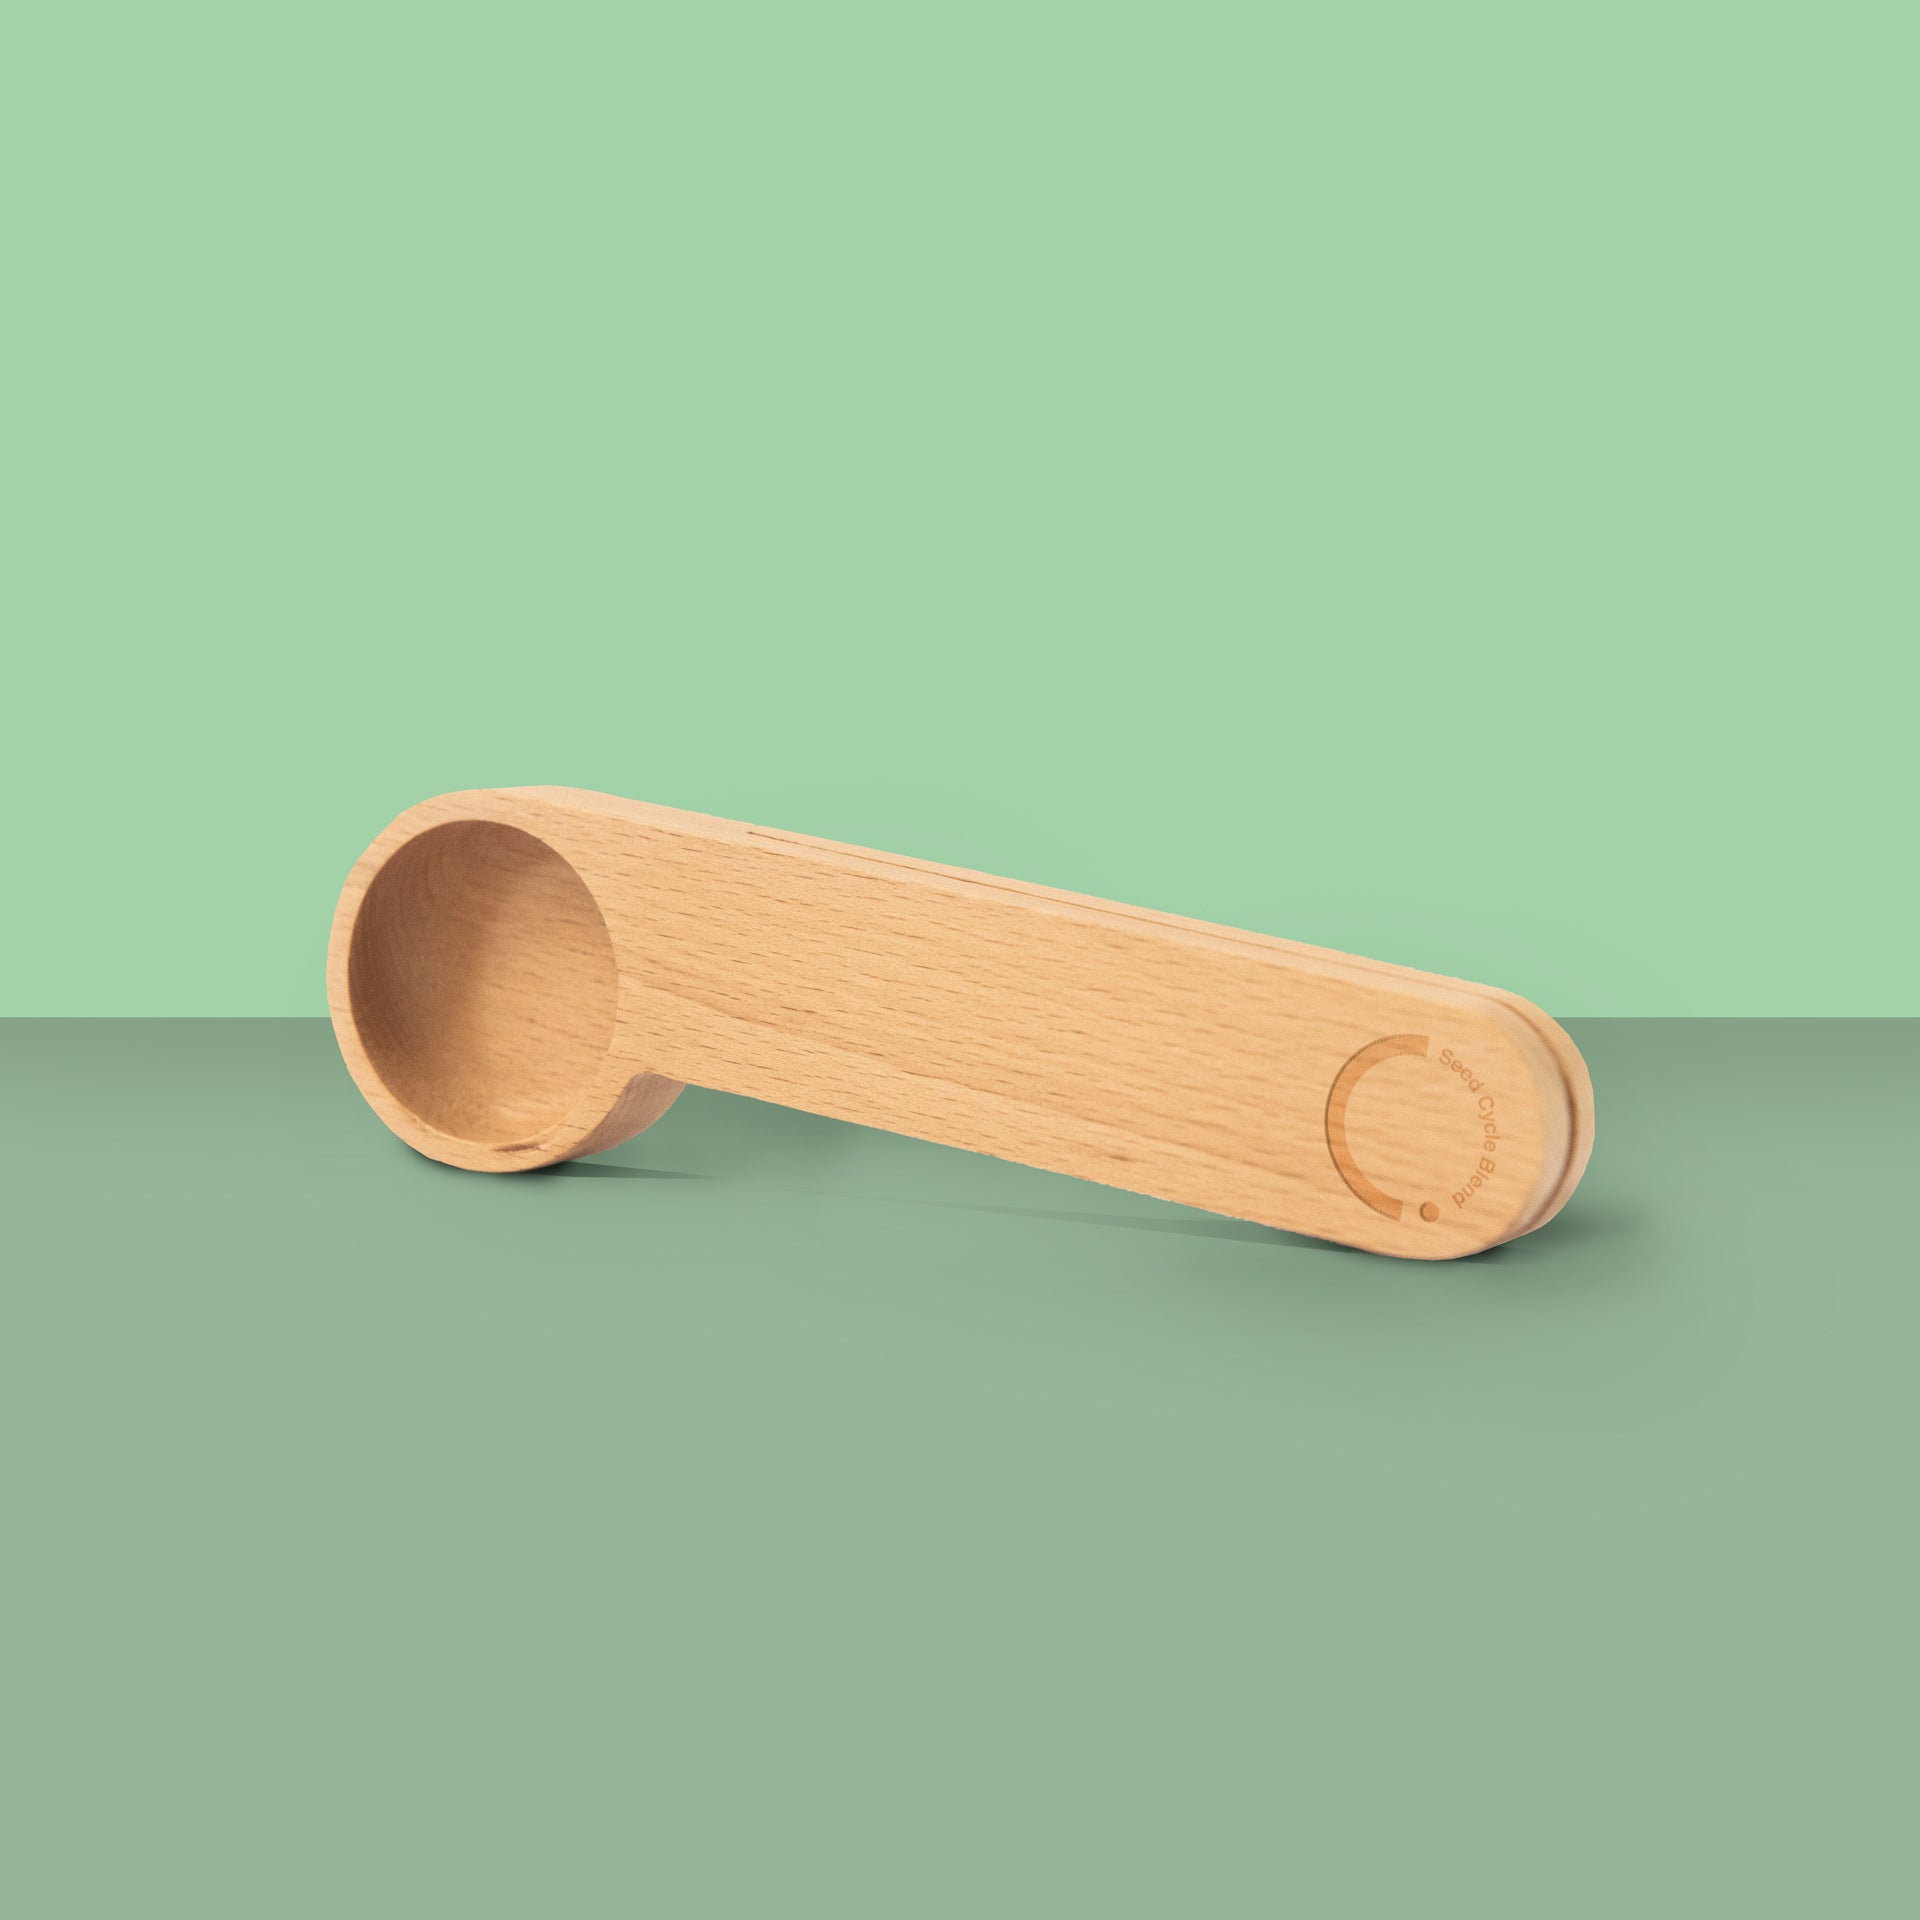 seed-cycle-blend-cloon-wooden-spoon-clip